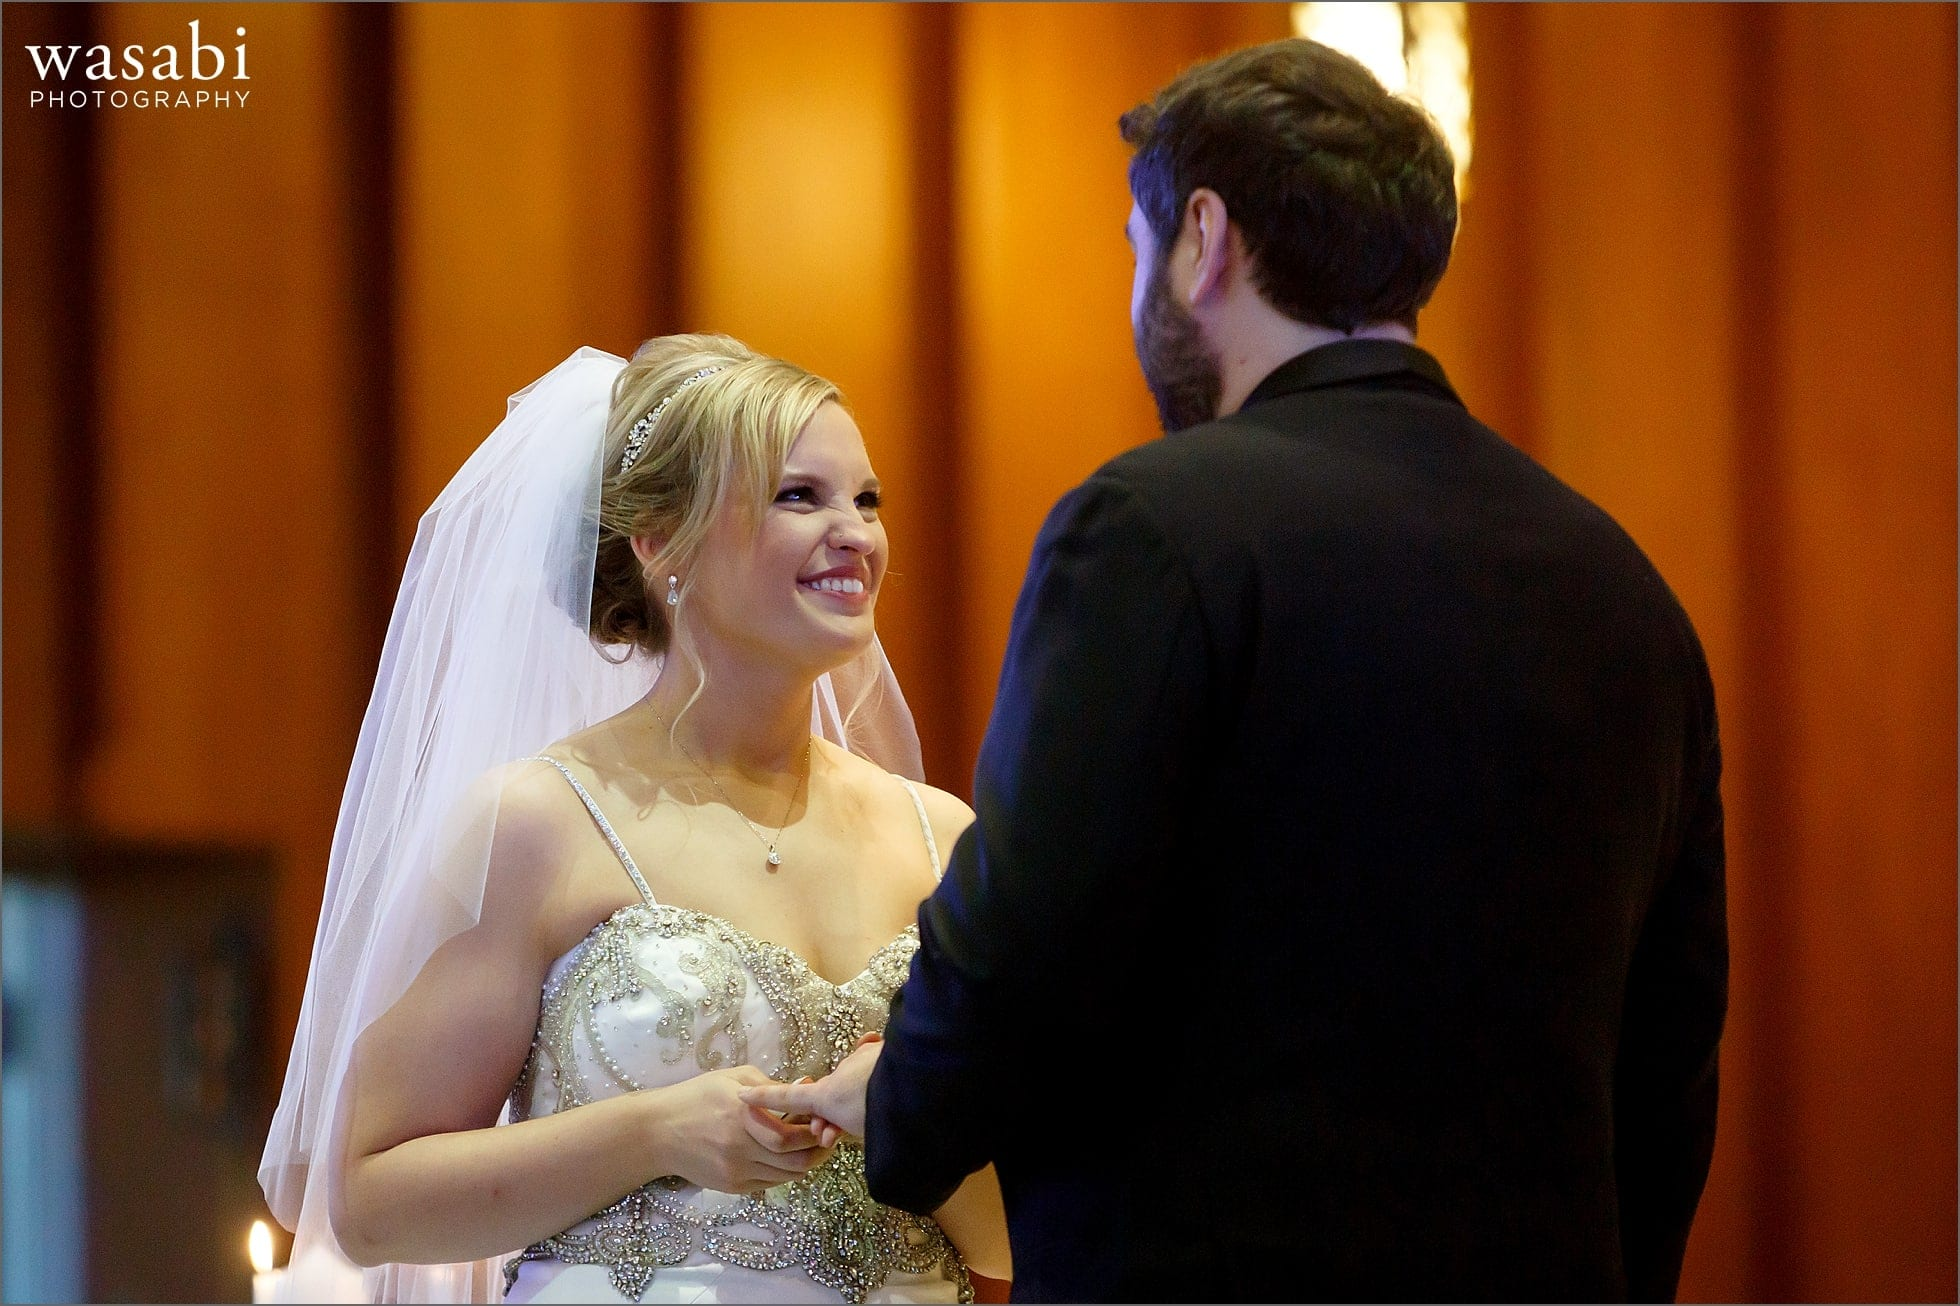 bride and groom exchange rings during wedding ceremony at Immaculate Conception Catholic Church in Chicago